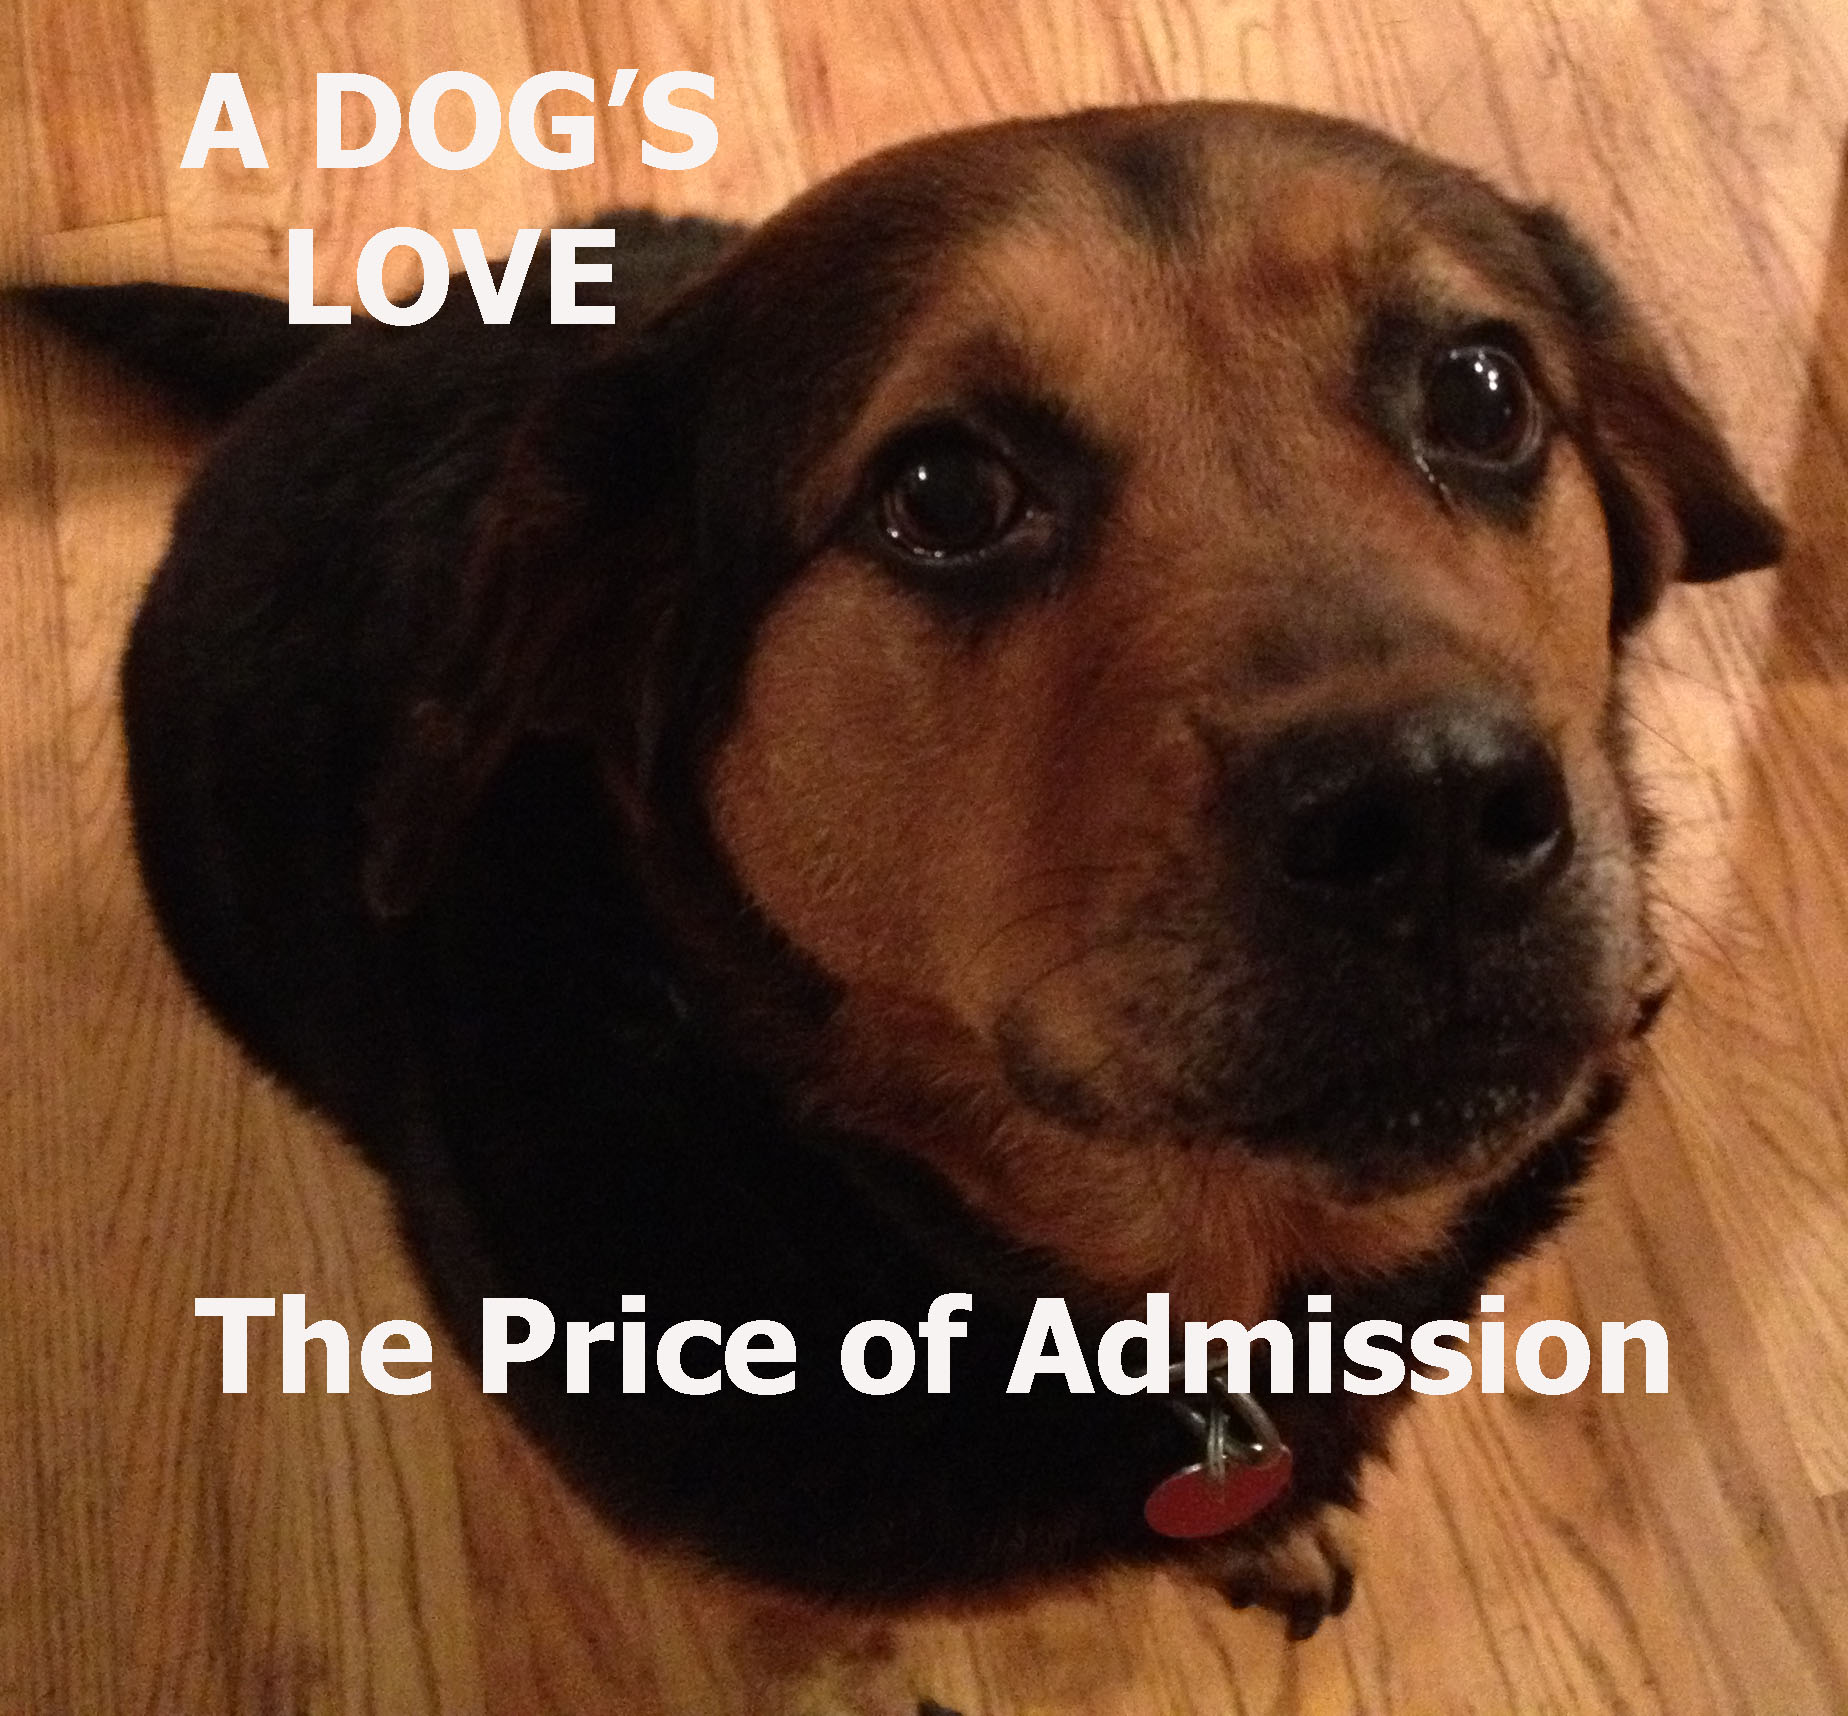 A Dog's Love – The Price of Admission